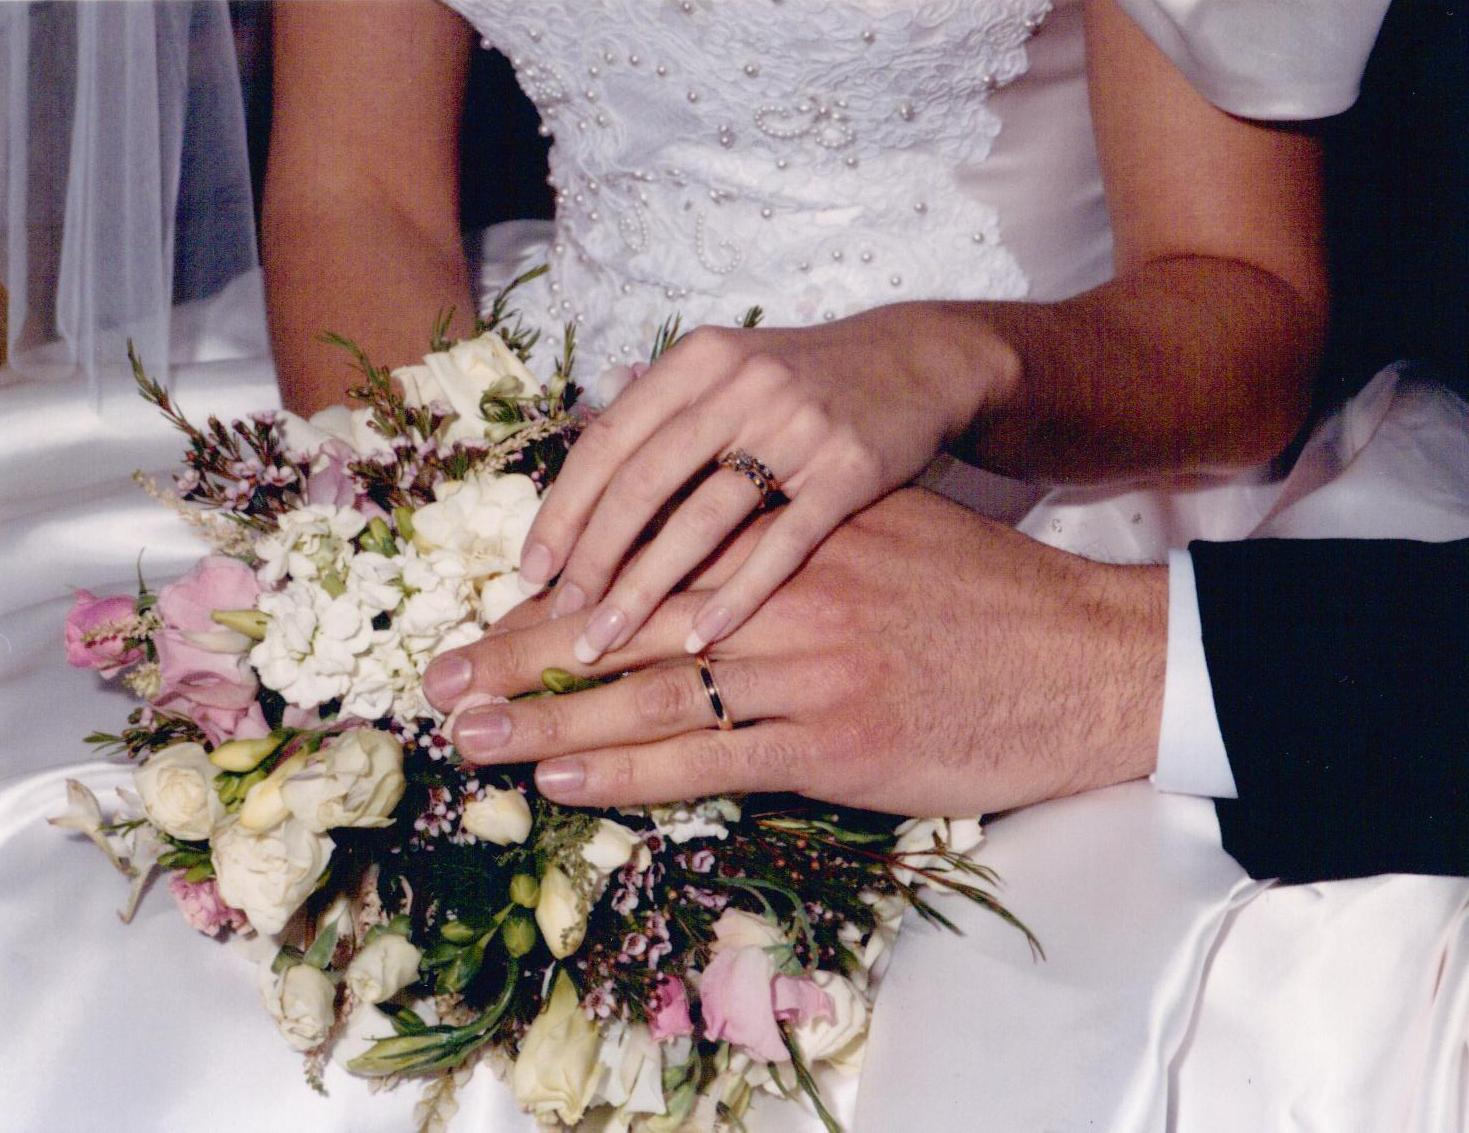 FHA Wedding Bridal Registry Savings Account For Newlyweds Cash Gift Downpayment On First Home